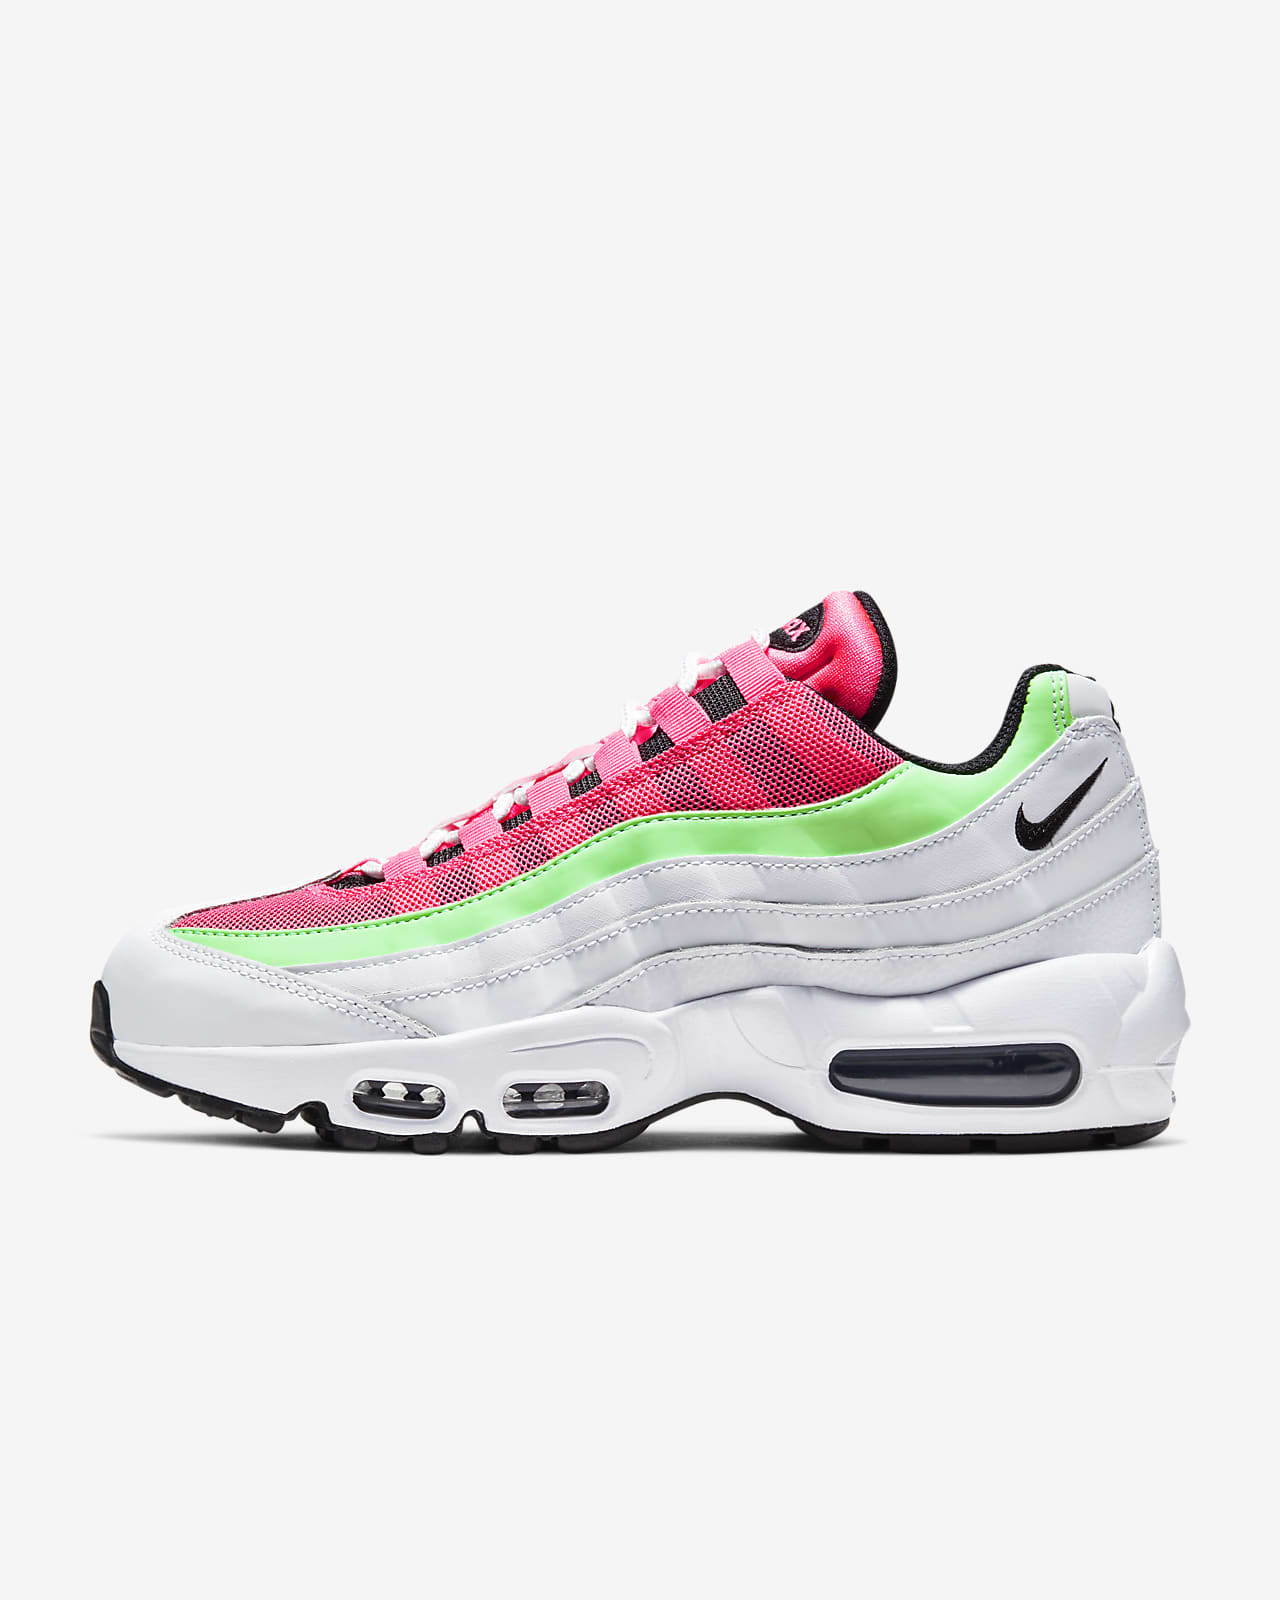 nike shoes price 10000 to 15000